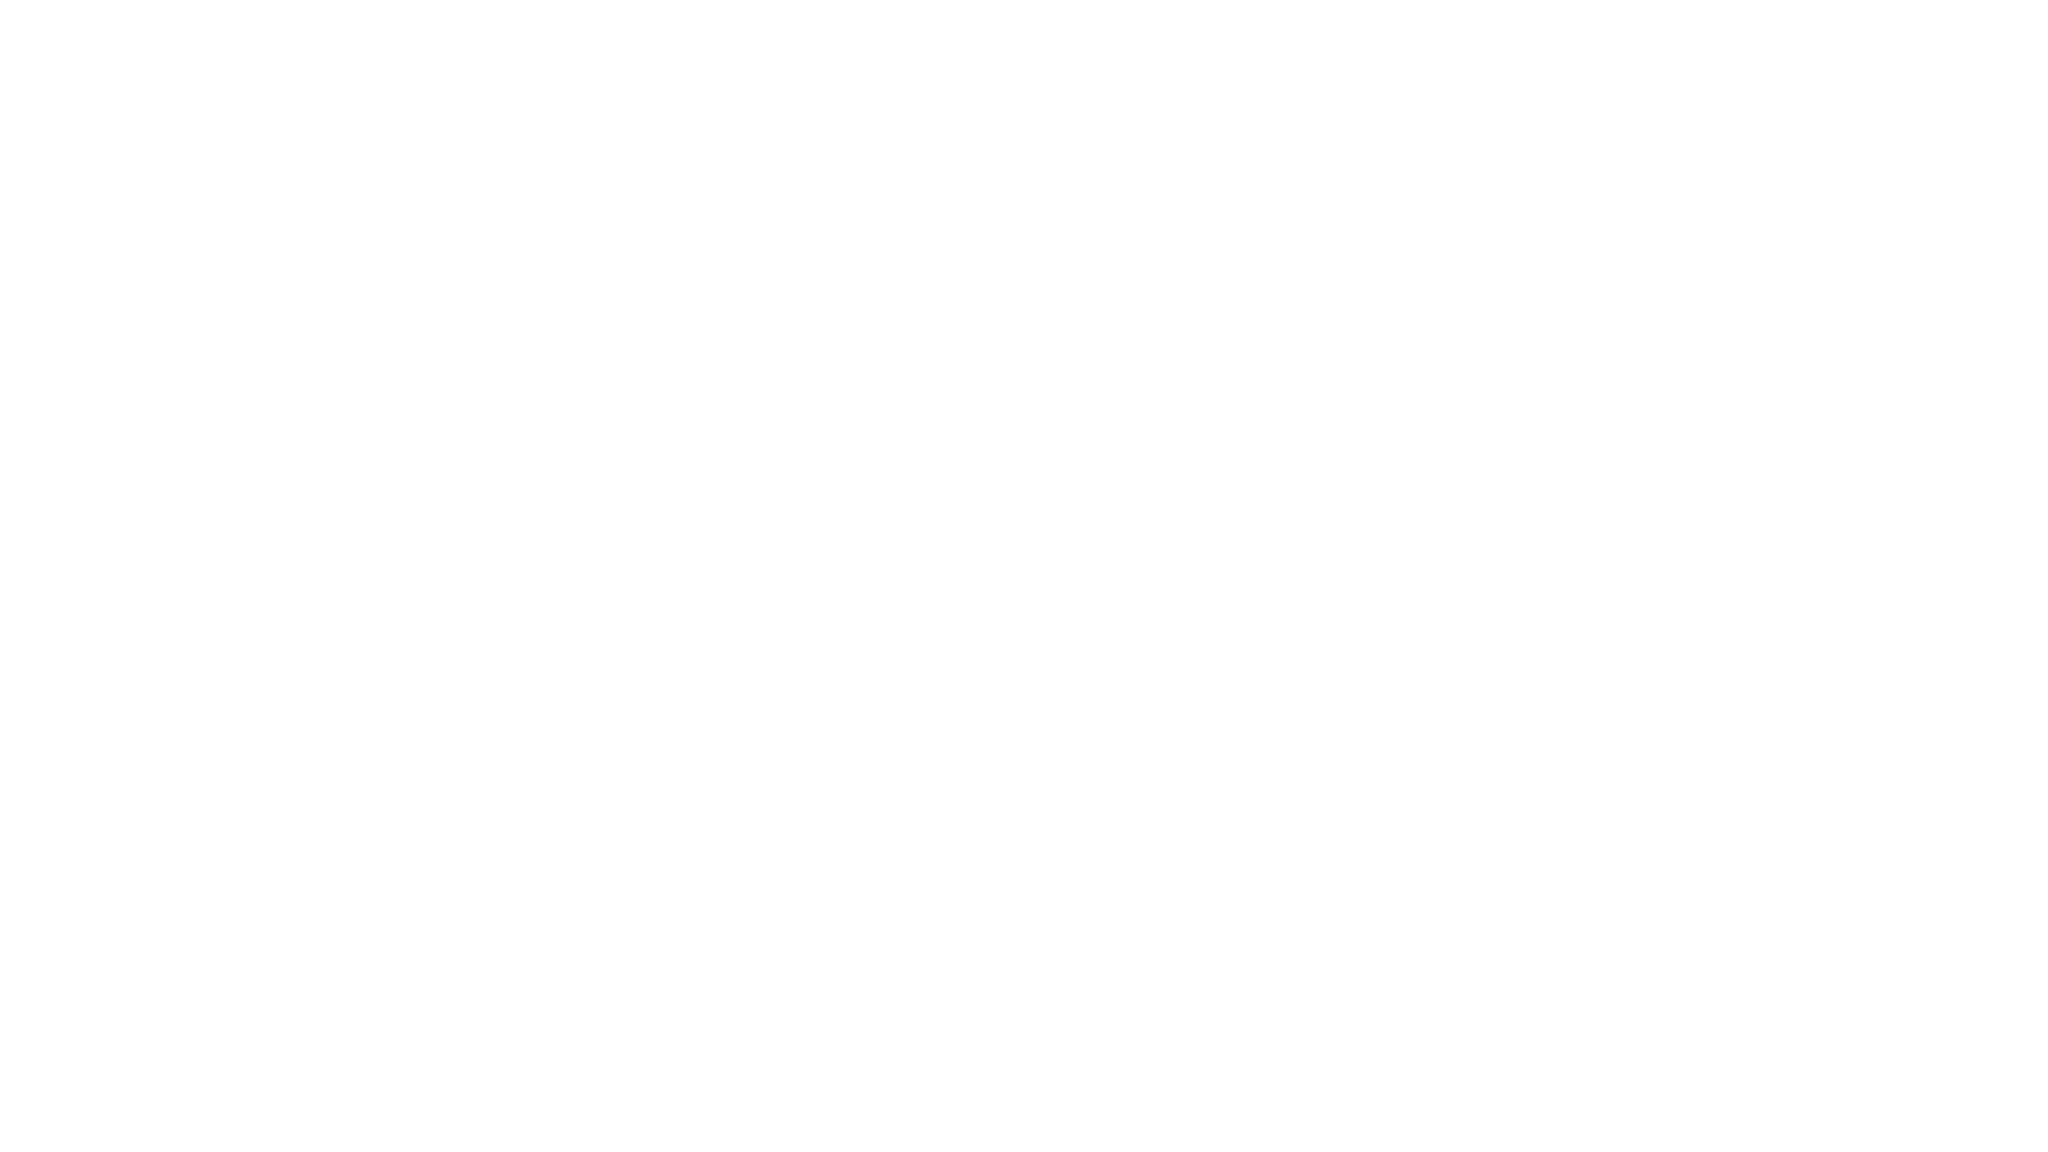 Summer camps near me (What to look for) | America's Finest Summer Camps